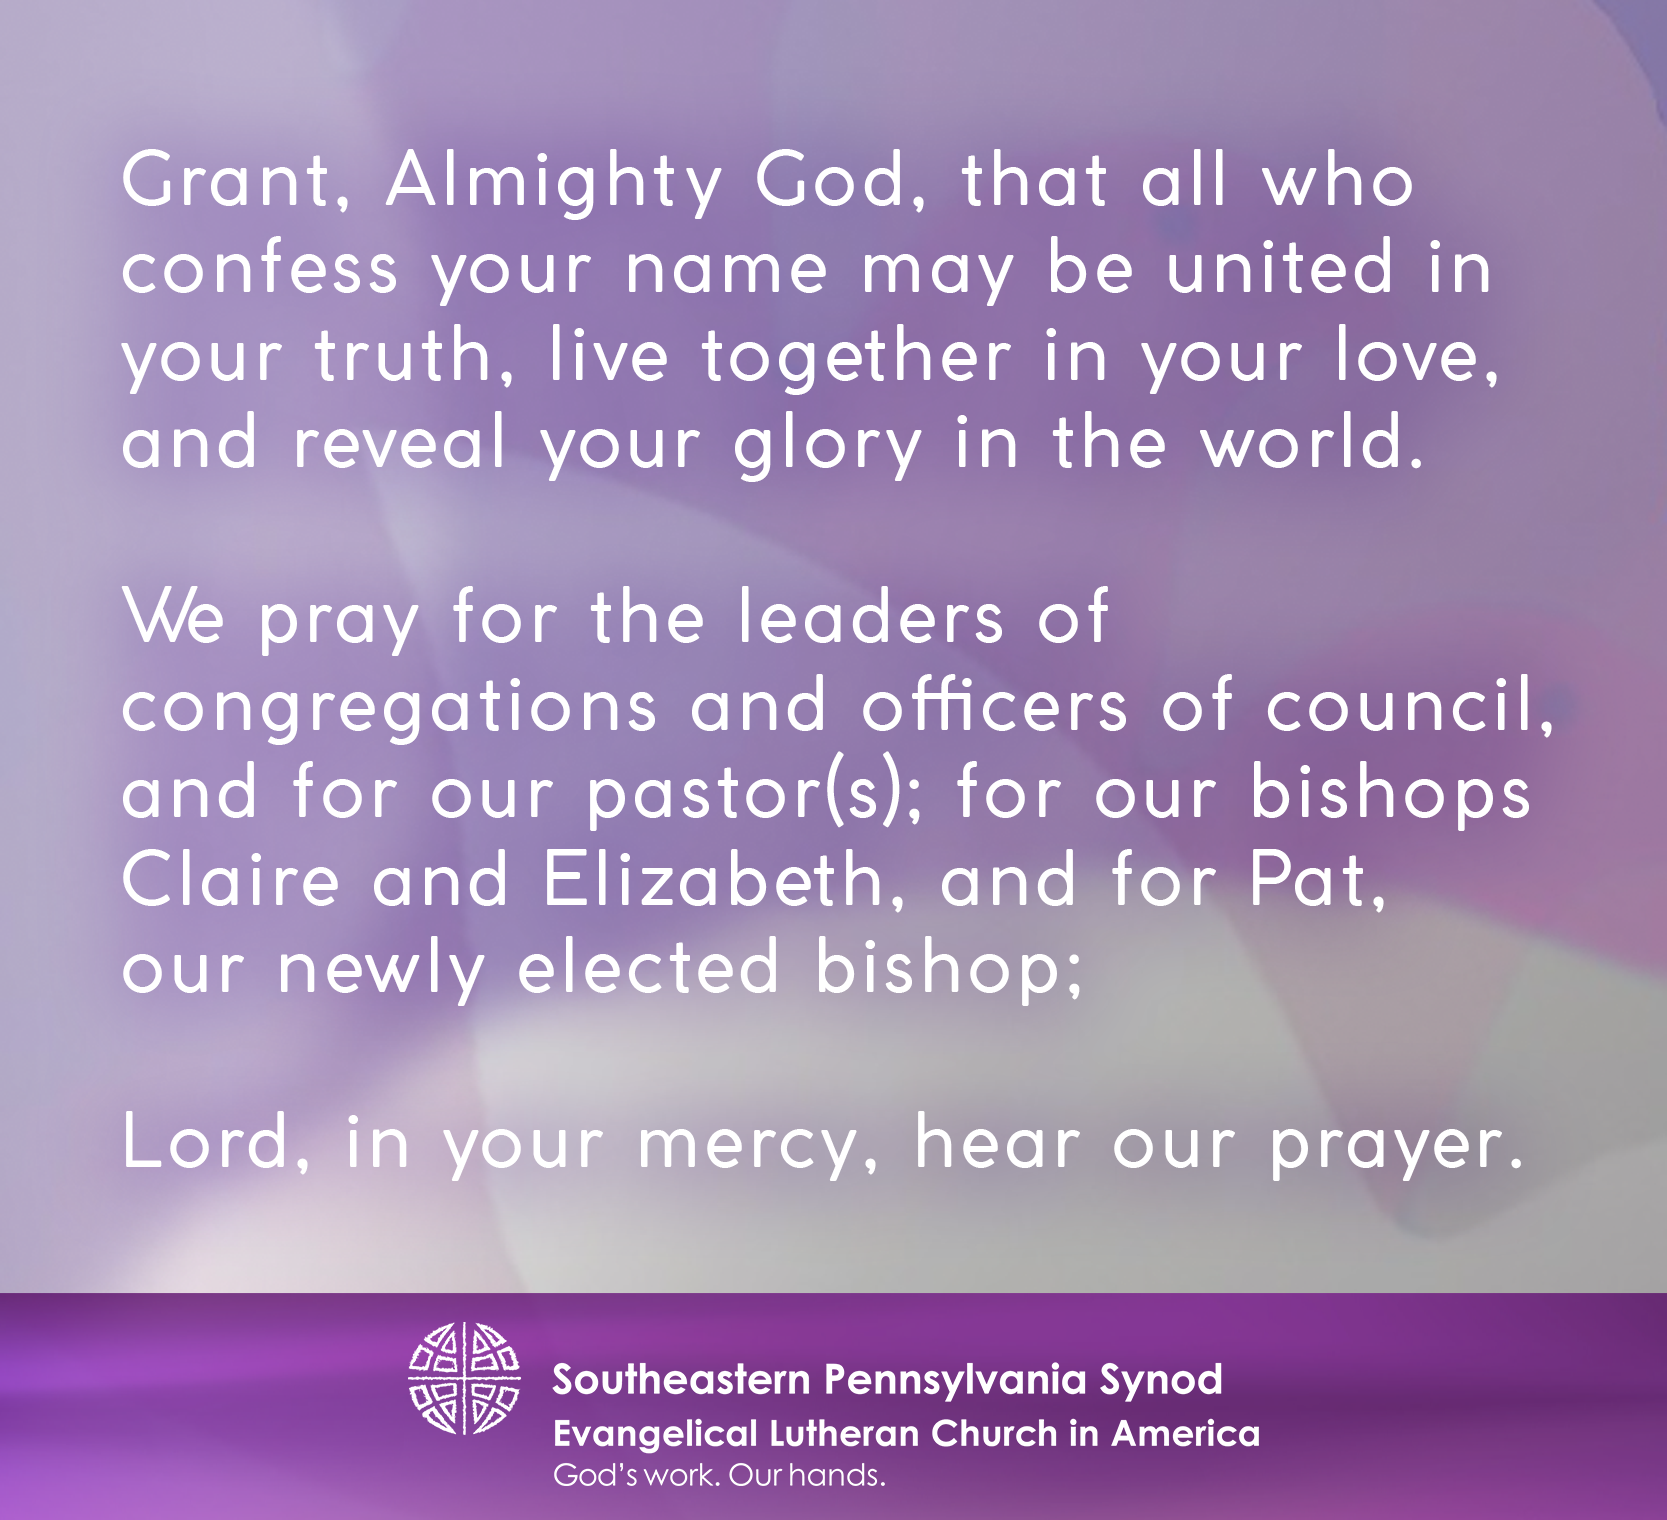 MinistryLink | Prayer for Bishop-elect and Church Leaders